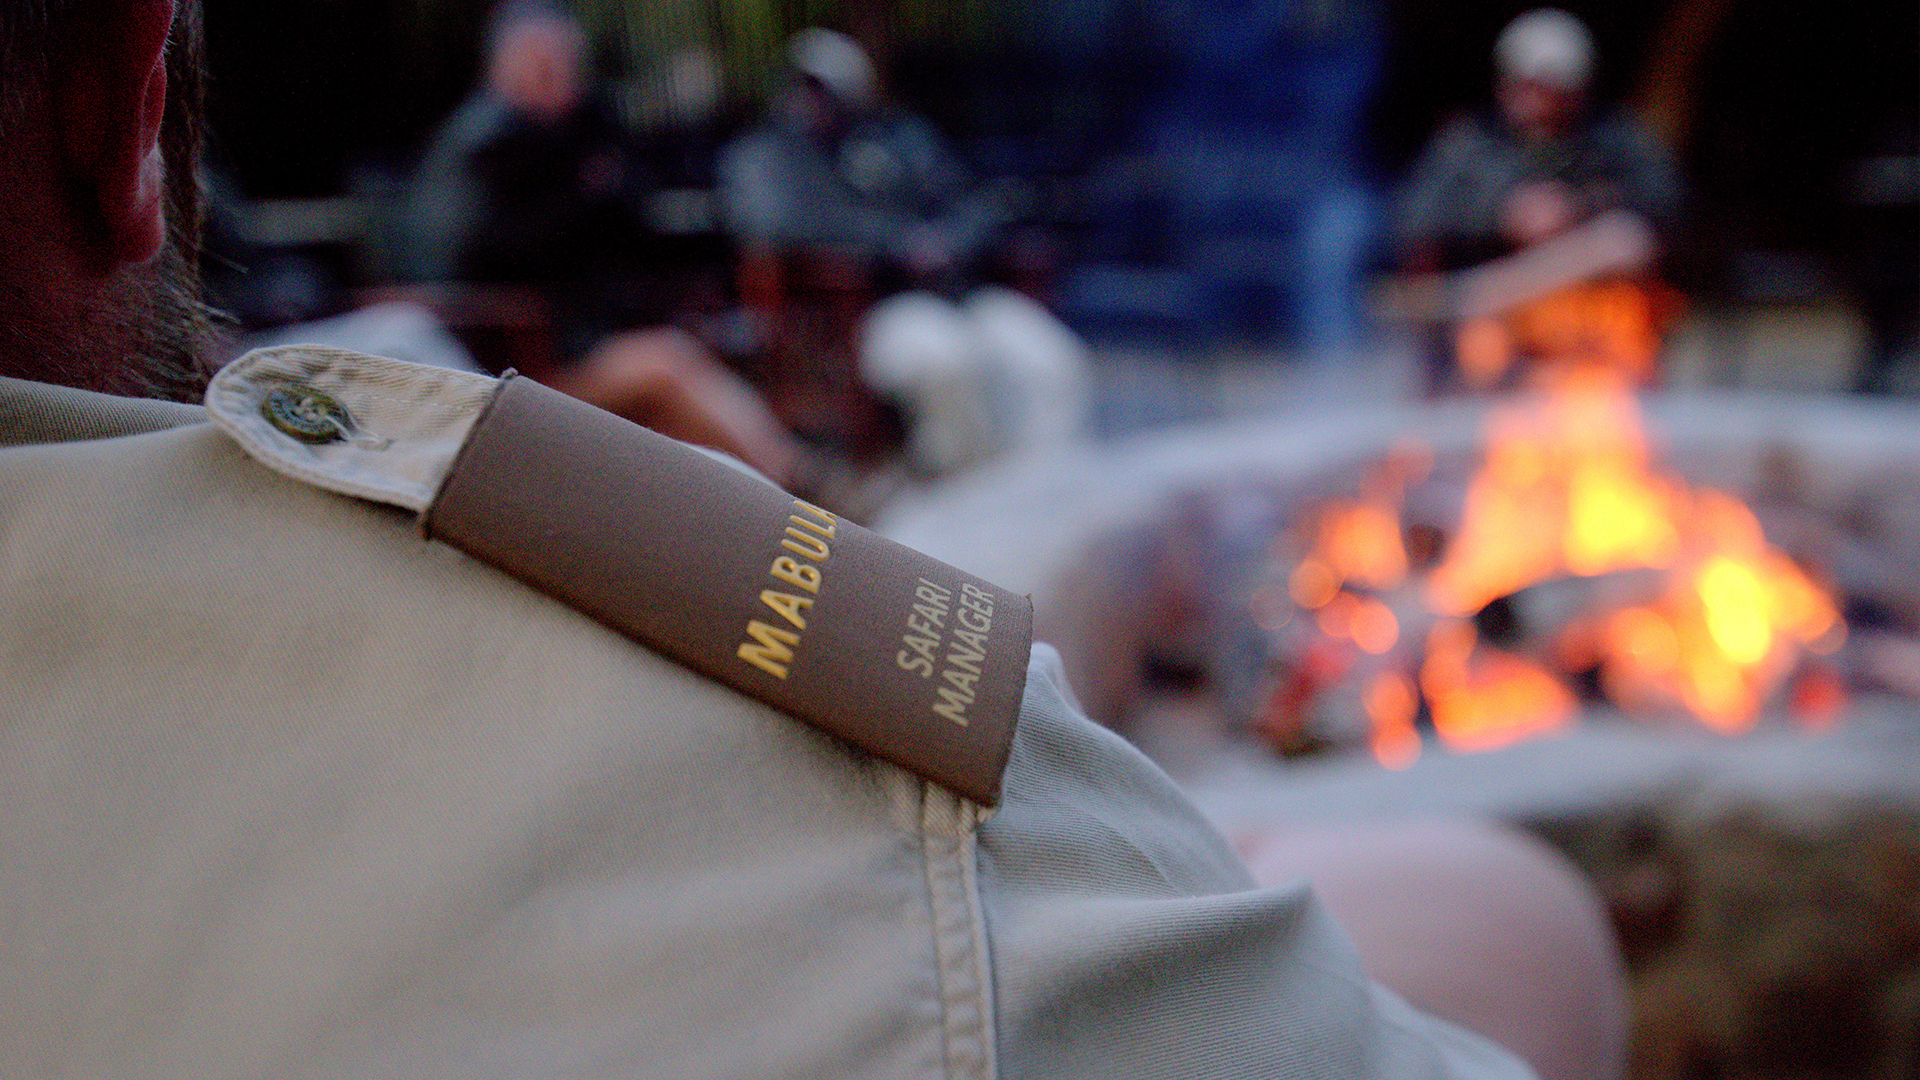 Shared myths and legends around  the fire at Mabula Game Lodge.